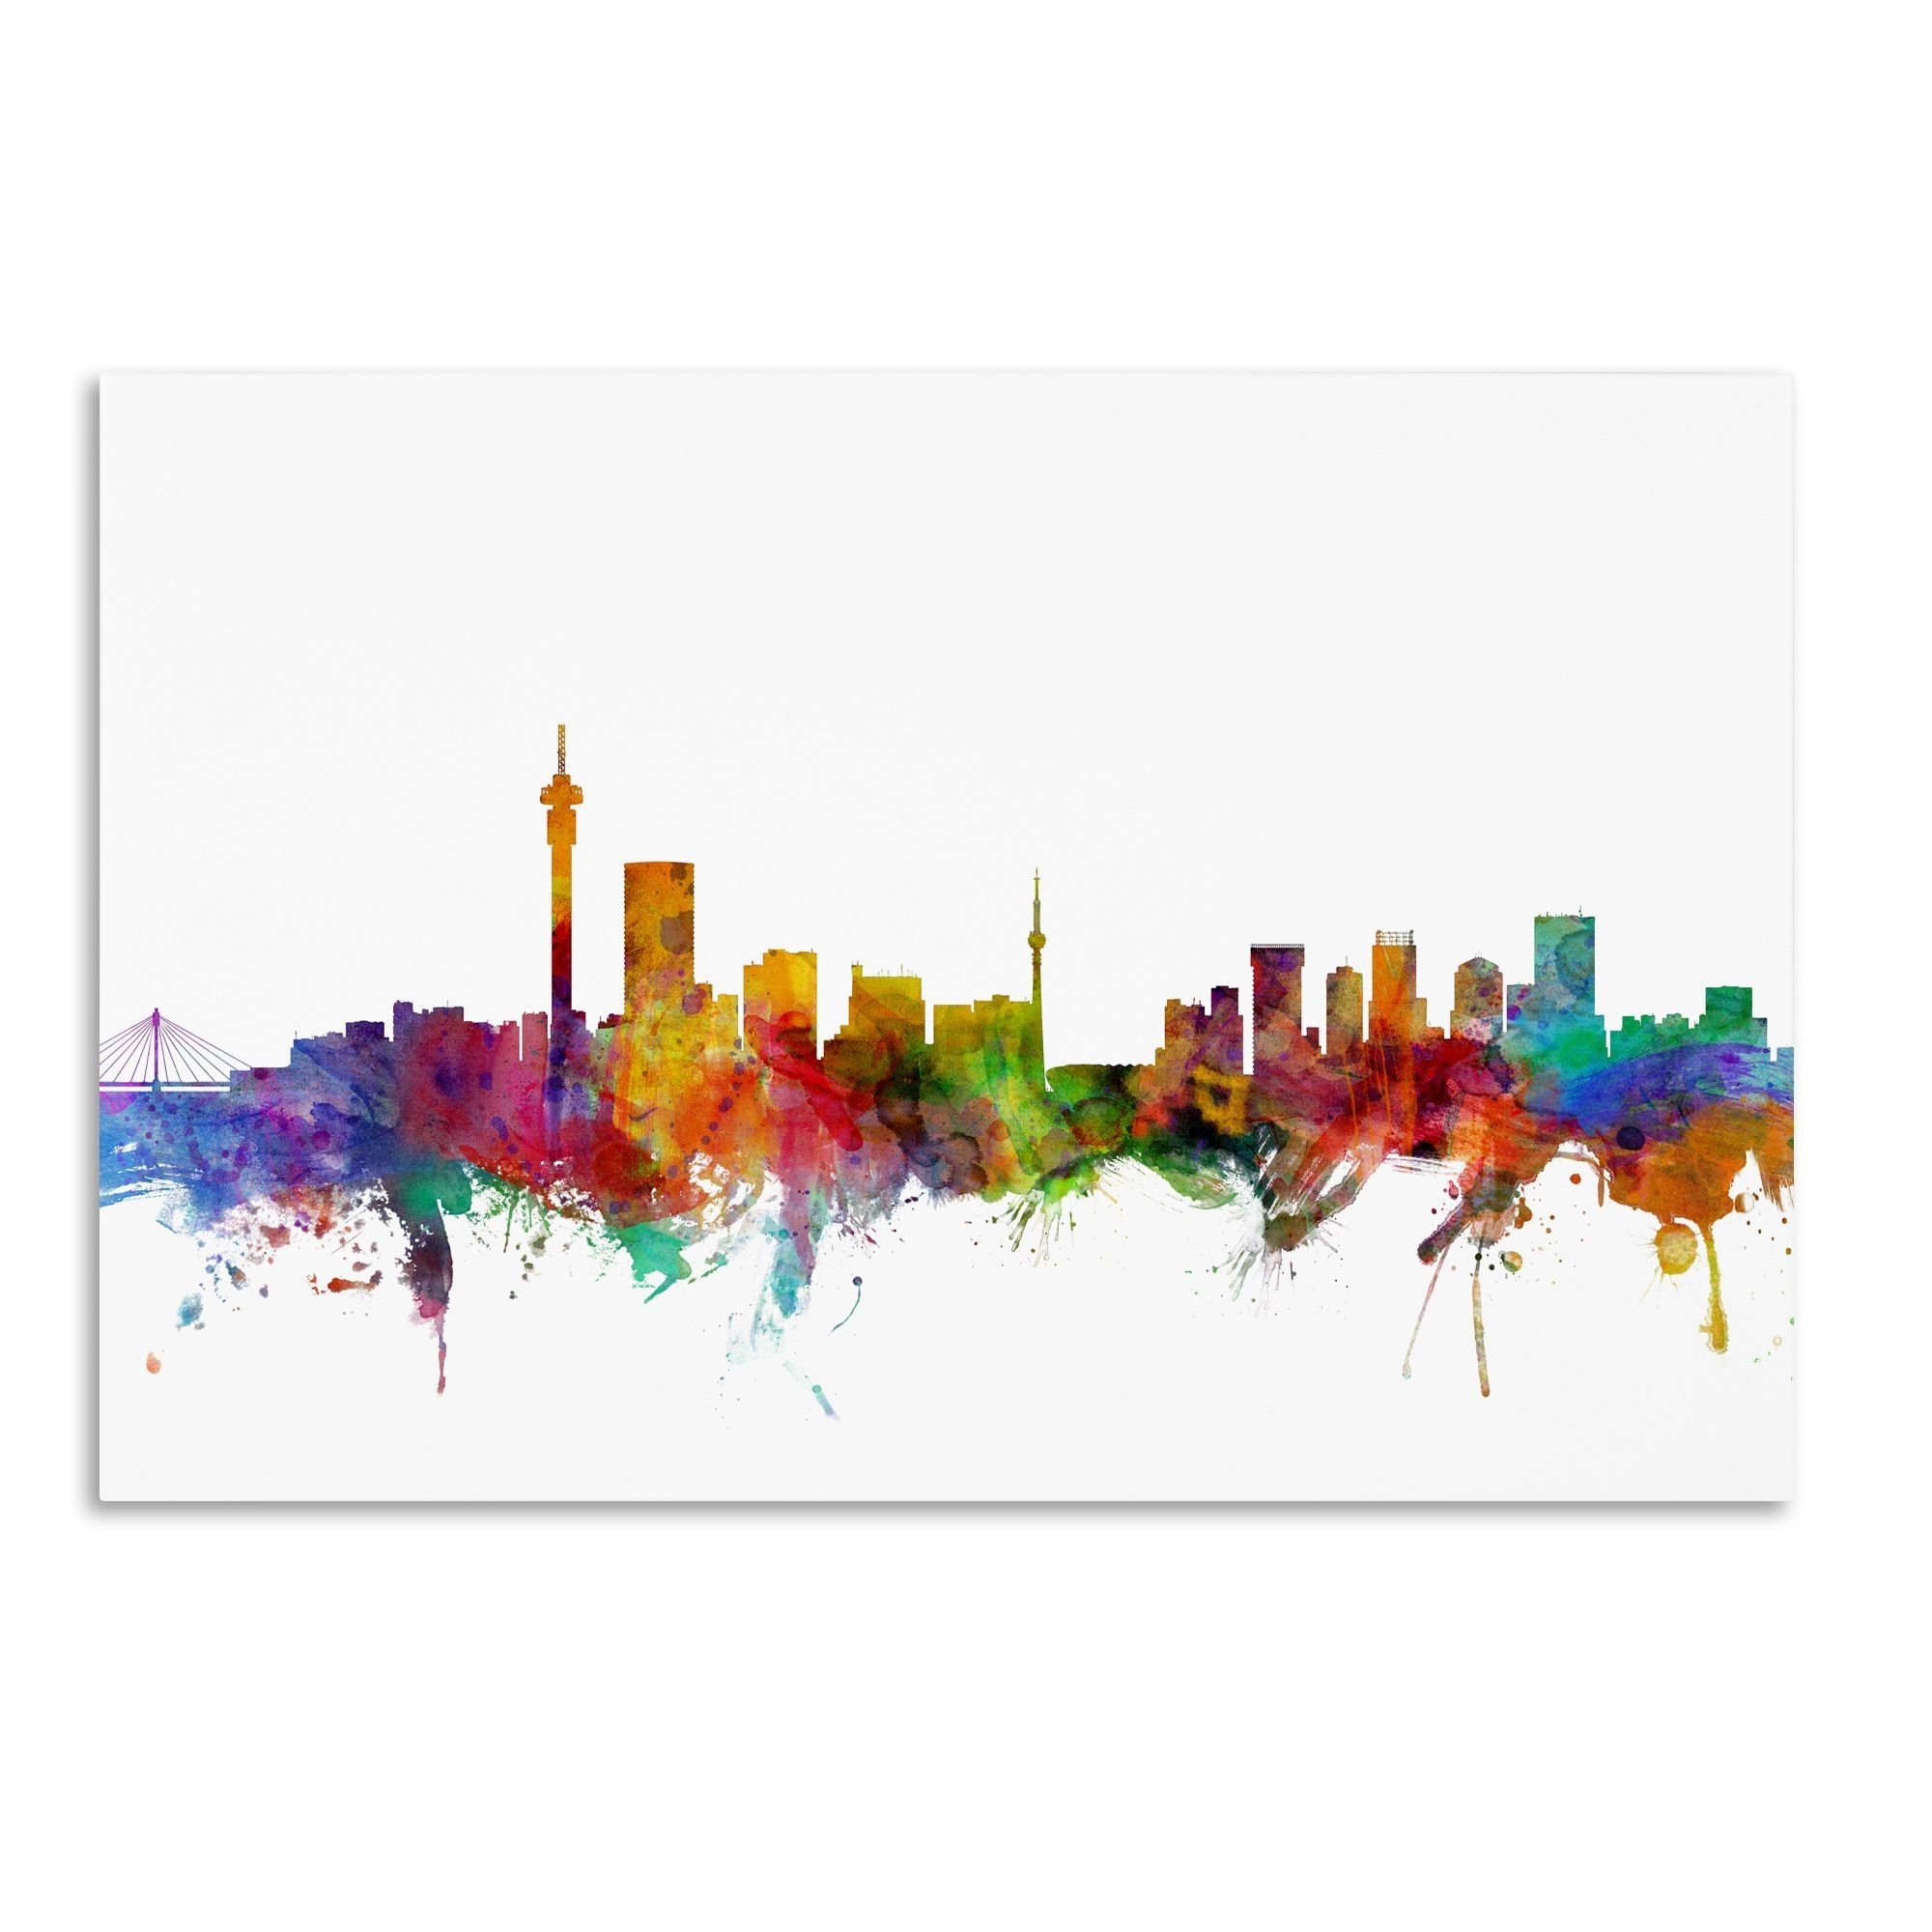 Johannesburg Canvas Wall Art Within Famous Michael Tompsett 'johannesburg South Africa Skyline' Wall Art (Gallery 1 of 15)